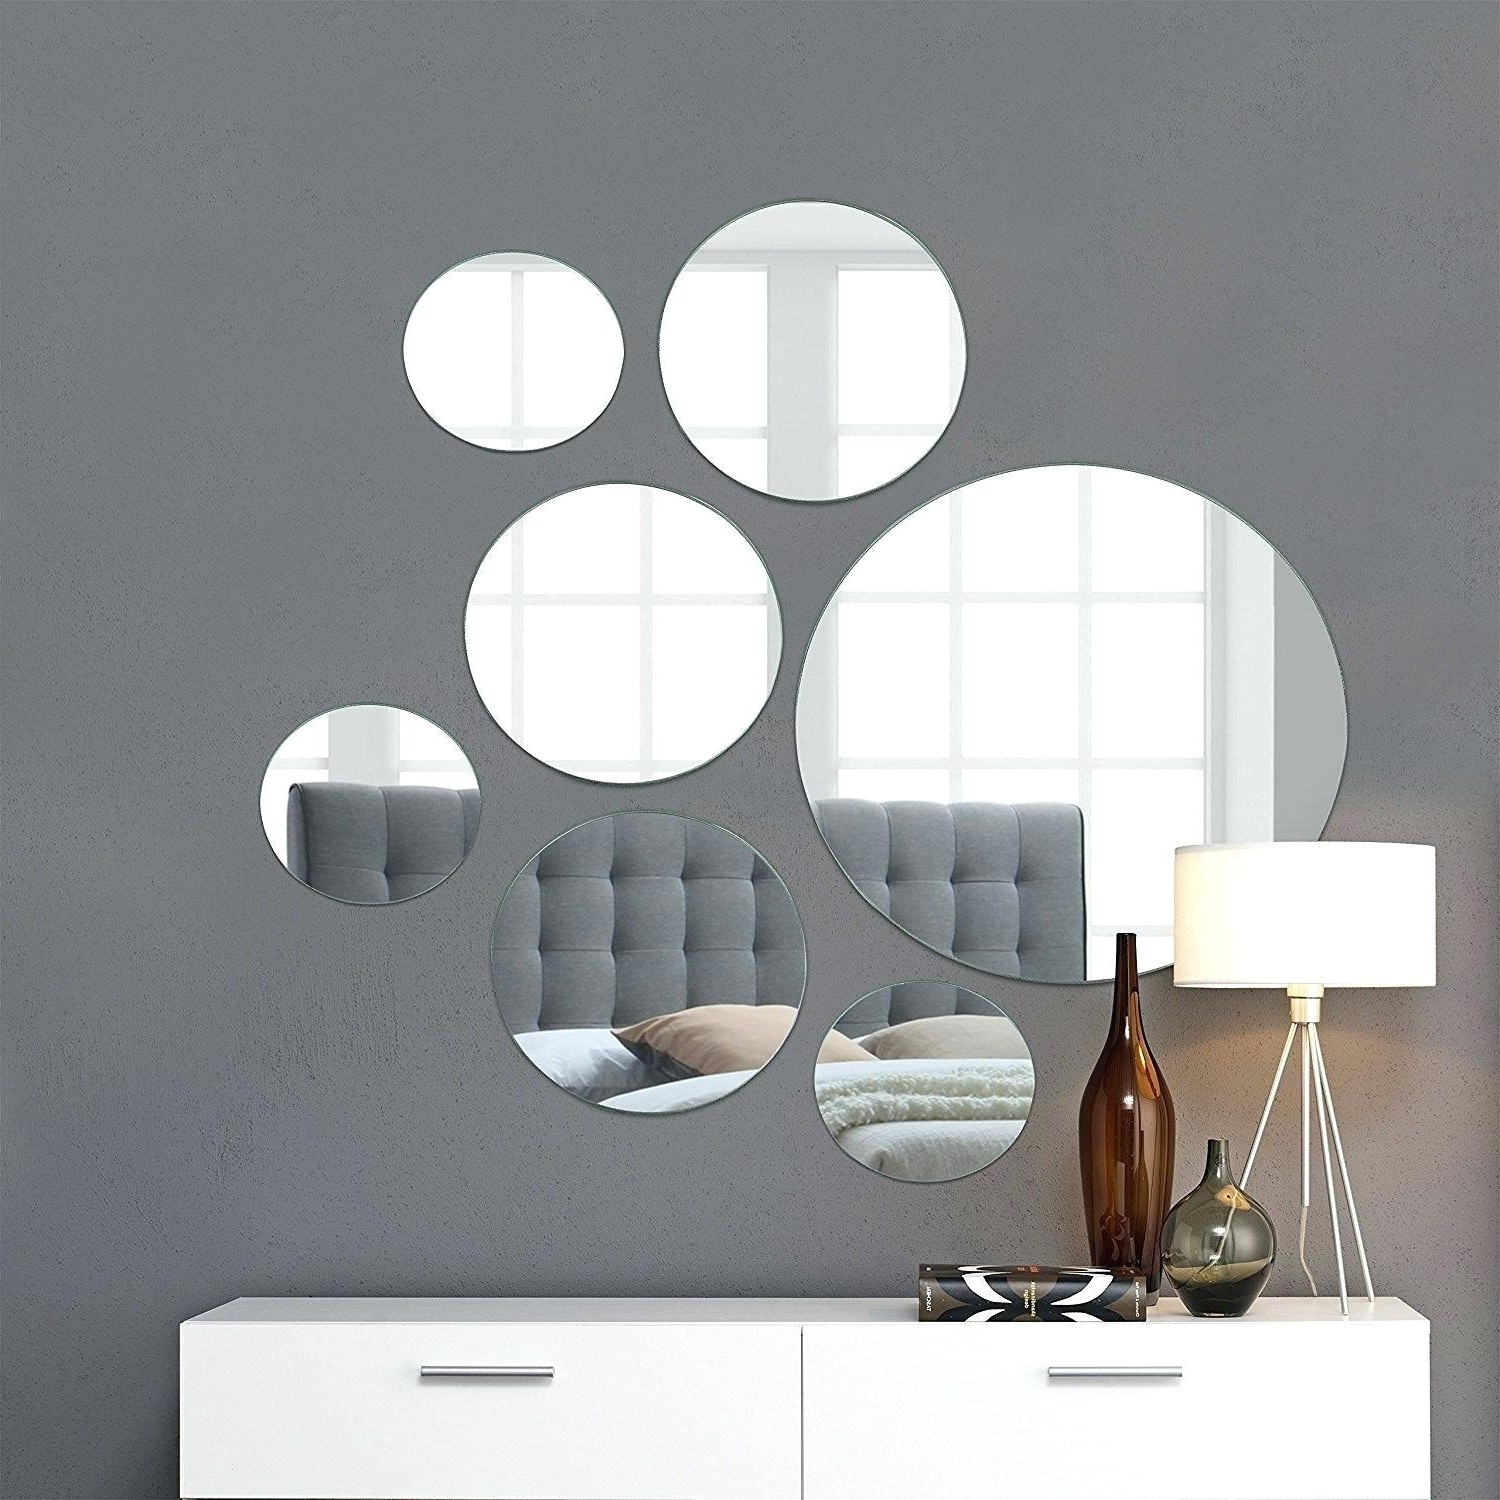 Preferred Cheap Decorative Wall Mirror Sets Mirrors Buy Online At Overstock Pertaining To Decorating Wall Mirrors (Gallery 12 of 20)